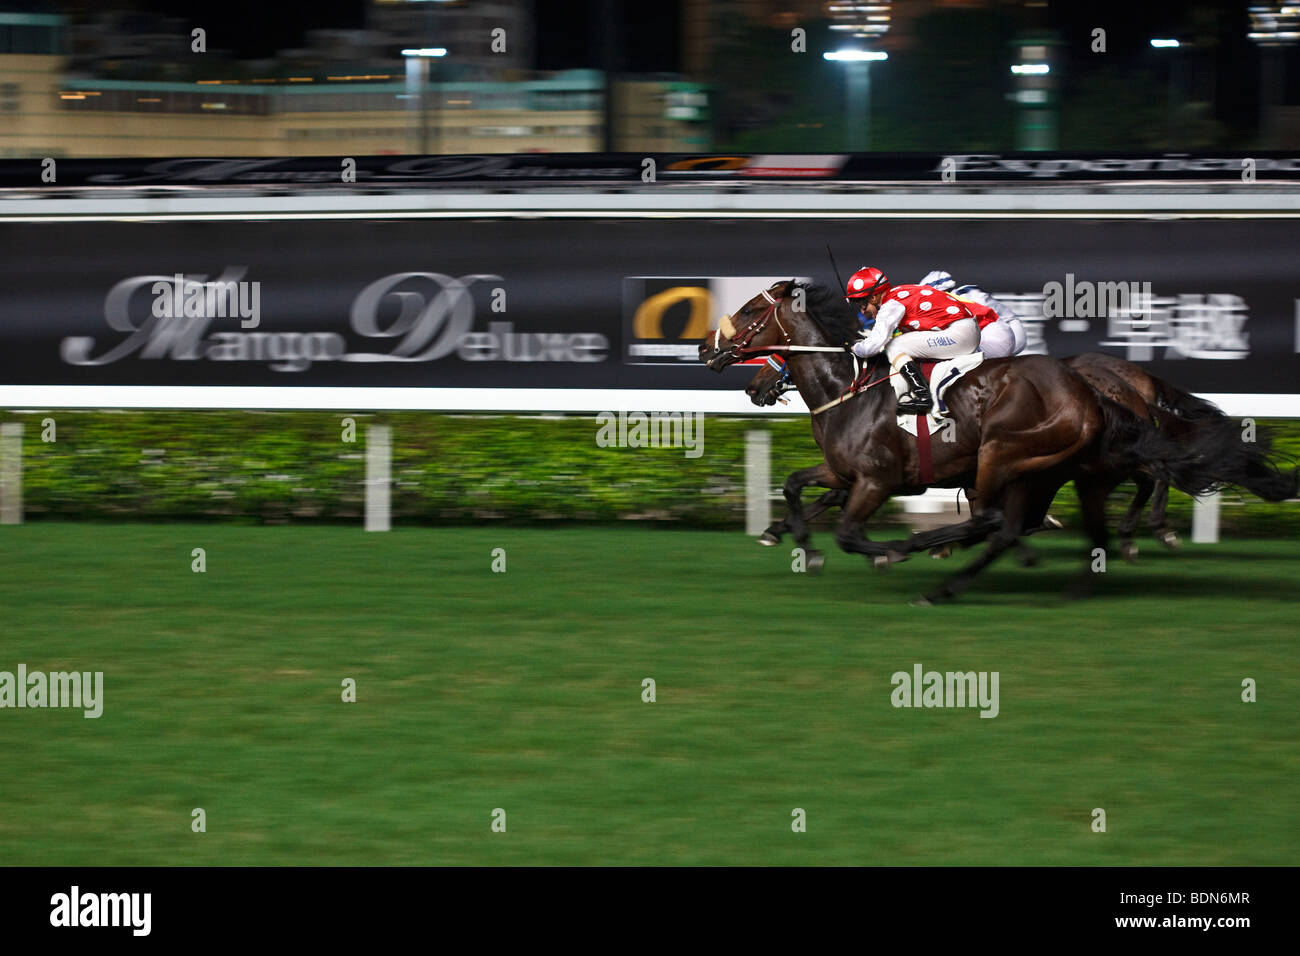 Horses galloping to the finish - night horse racing at Happy Valley race course in Hong Kong. - Stock Image